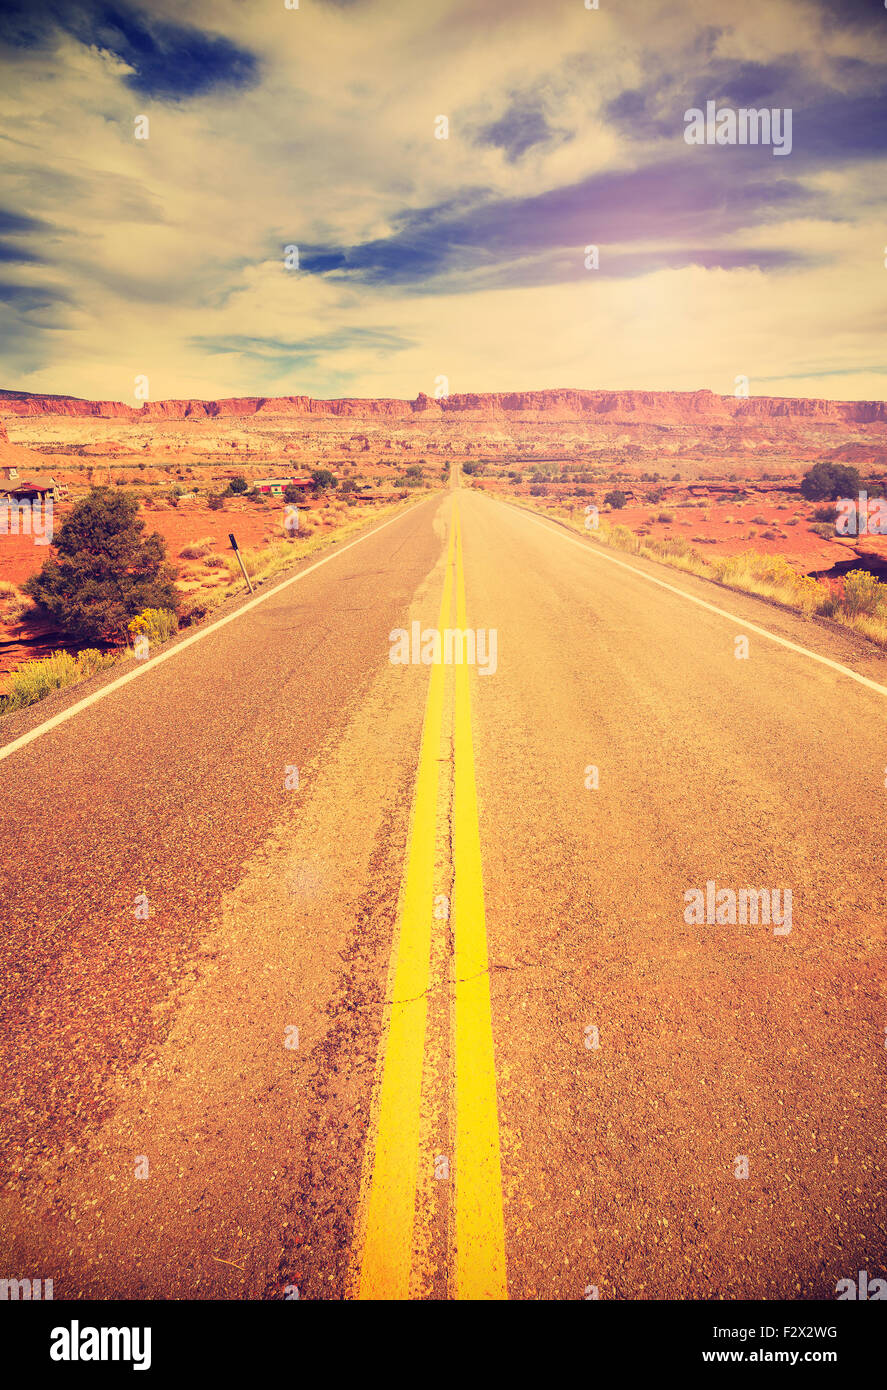 Retro vintage filtered picture of a country highway, USA. - Stock Image